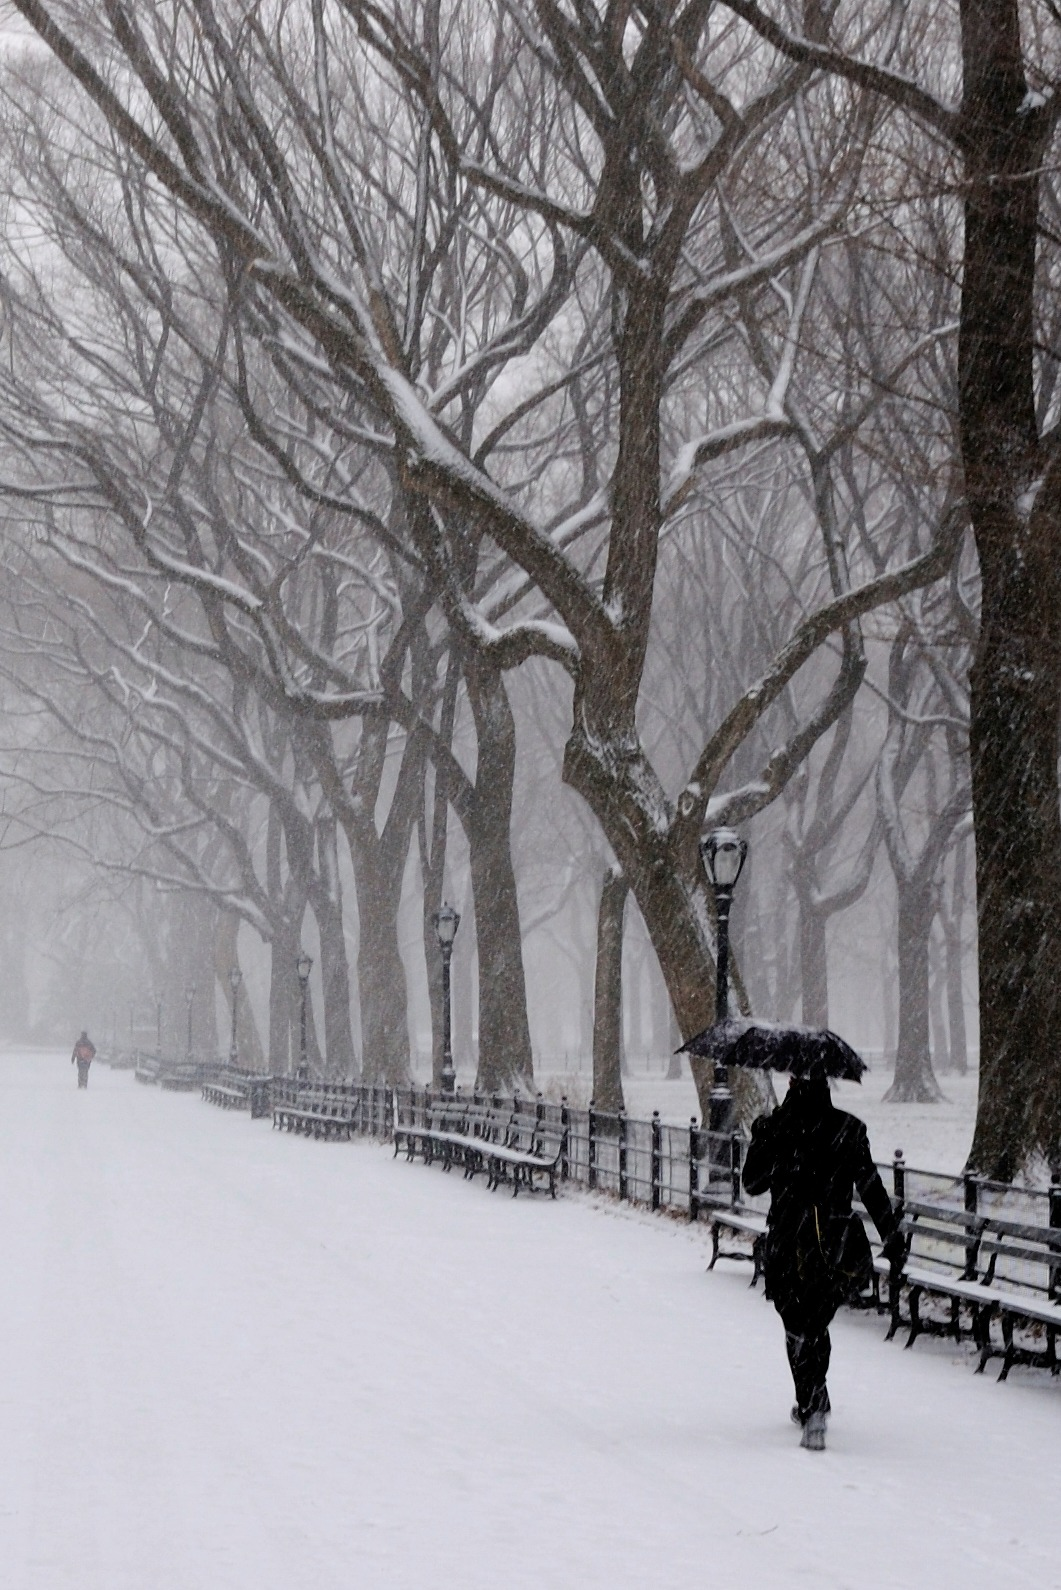 0rient-express:  central park | by Ralph Hockens.